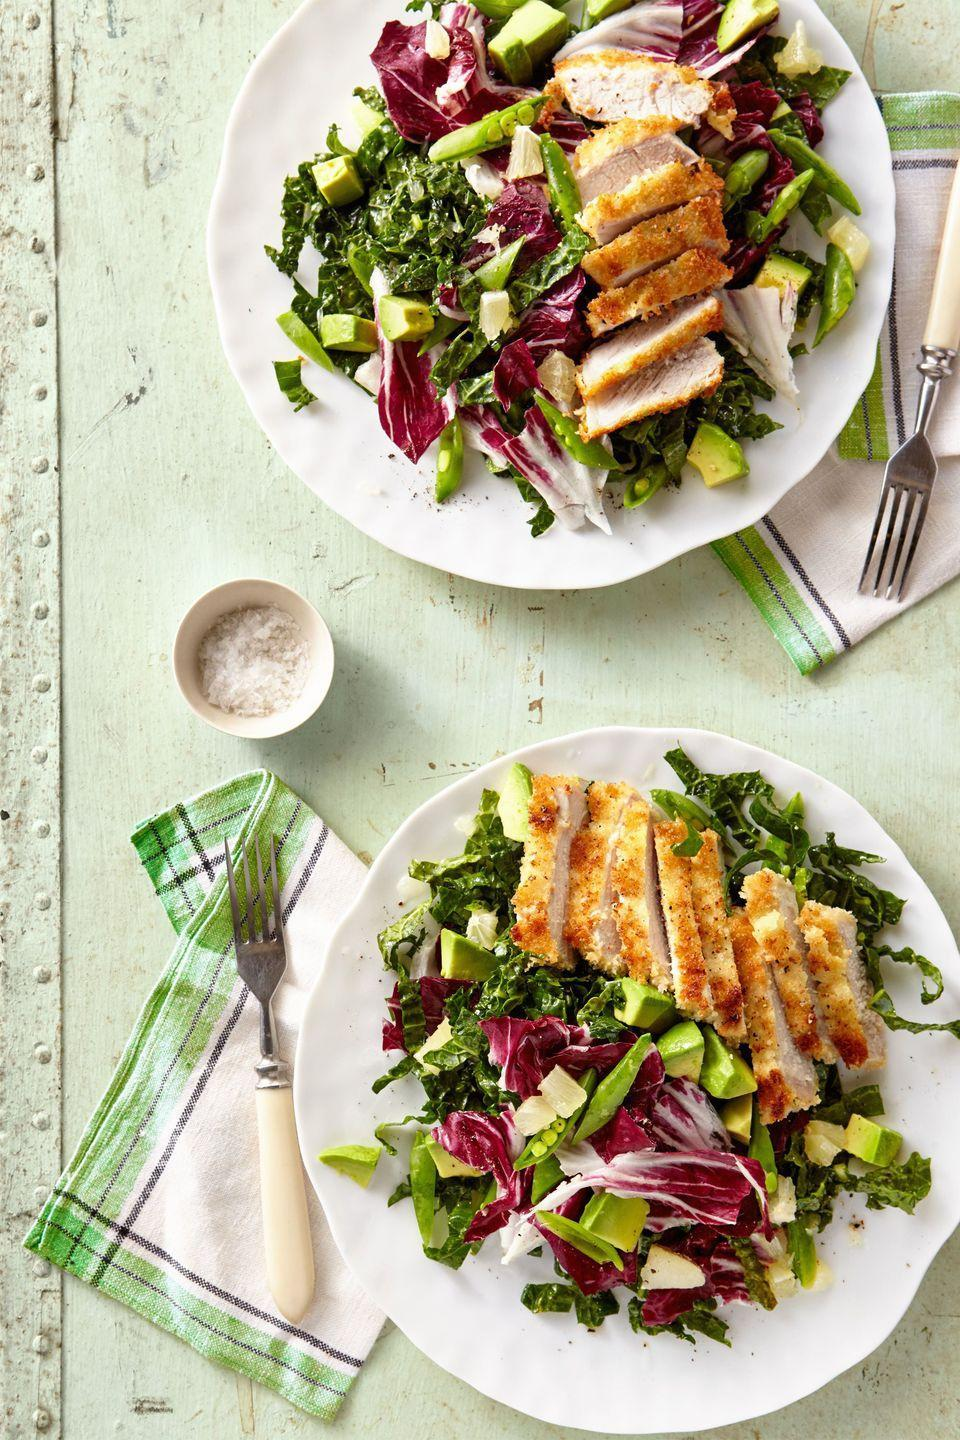 "<p>Pairing juicy port cutlet with an avocado kale salad is the ultimate spring dinner.</p><p><strong><a href=""https://www.countryliving.com/food-drinks/recipes/a37760/breaded-pork-cutlet-with-avocado-and-shredded-kale-salad-recipe/"" rel=""nofollow noopener"" target=""_blank"" data-ylk=""slk:Get the recipe."" class=""link rapid-noclick-resp"">Get the recipe.</a></strong></p><p><a class=""link rapid-noclick-resp"" href=""https://www.amazon.com/Pyrex-Prepware-3-Piece-Glass-Mixing/dp/B00LGLHUA0?tag=syn-yahoo-20&ascsubtag=%5Bartid%7C10050.g.648%5Bsrc%7Cyahoo-us"" rel=""nofollow noopener"" target=""_blank"" data-ylk=""slk:SHOP MIXING BOWLS"">SHOP MIXING BOWLS</a></p>"